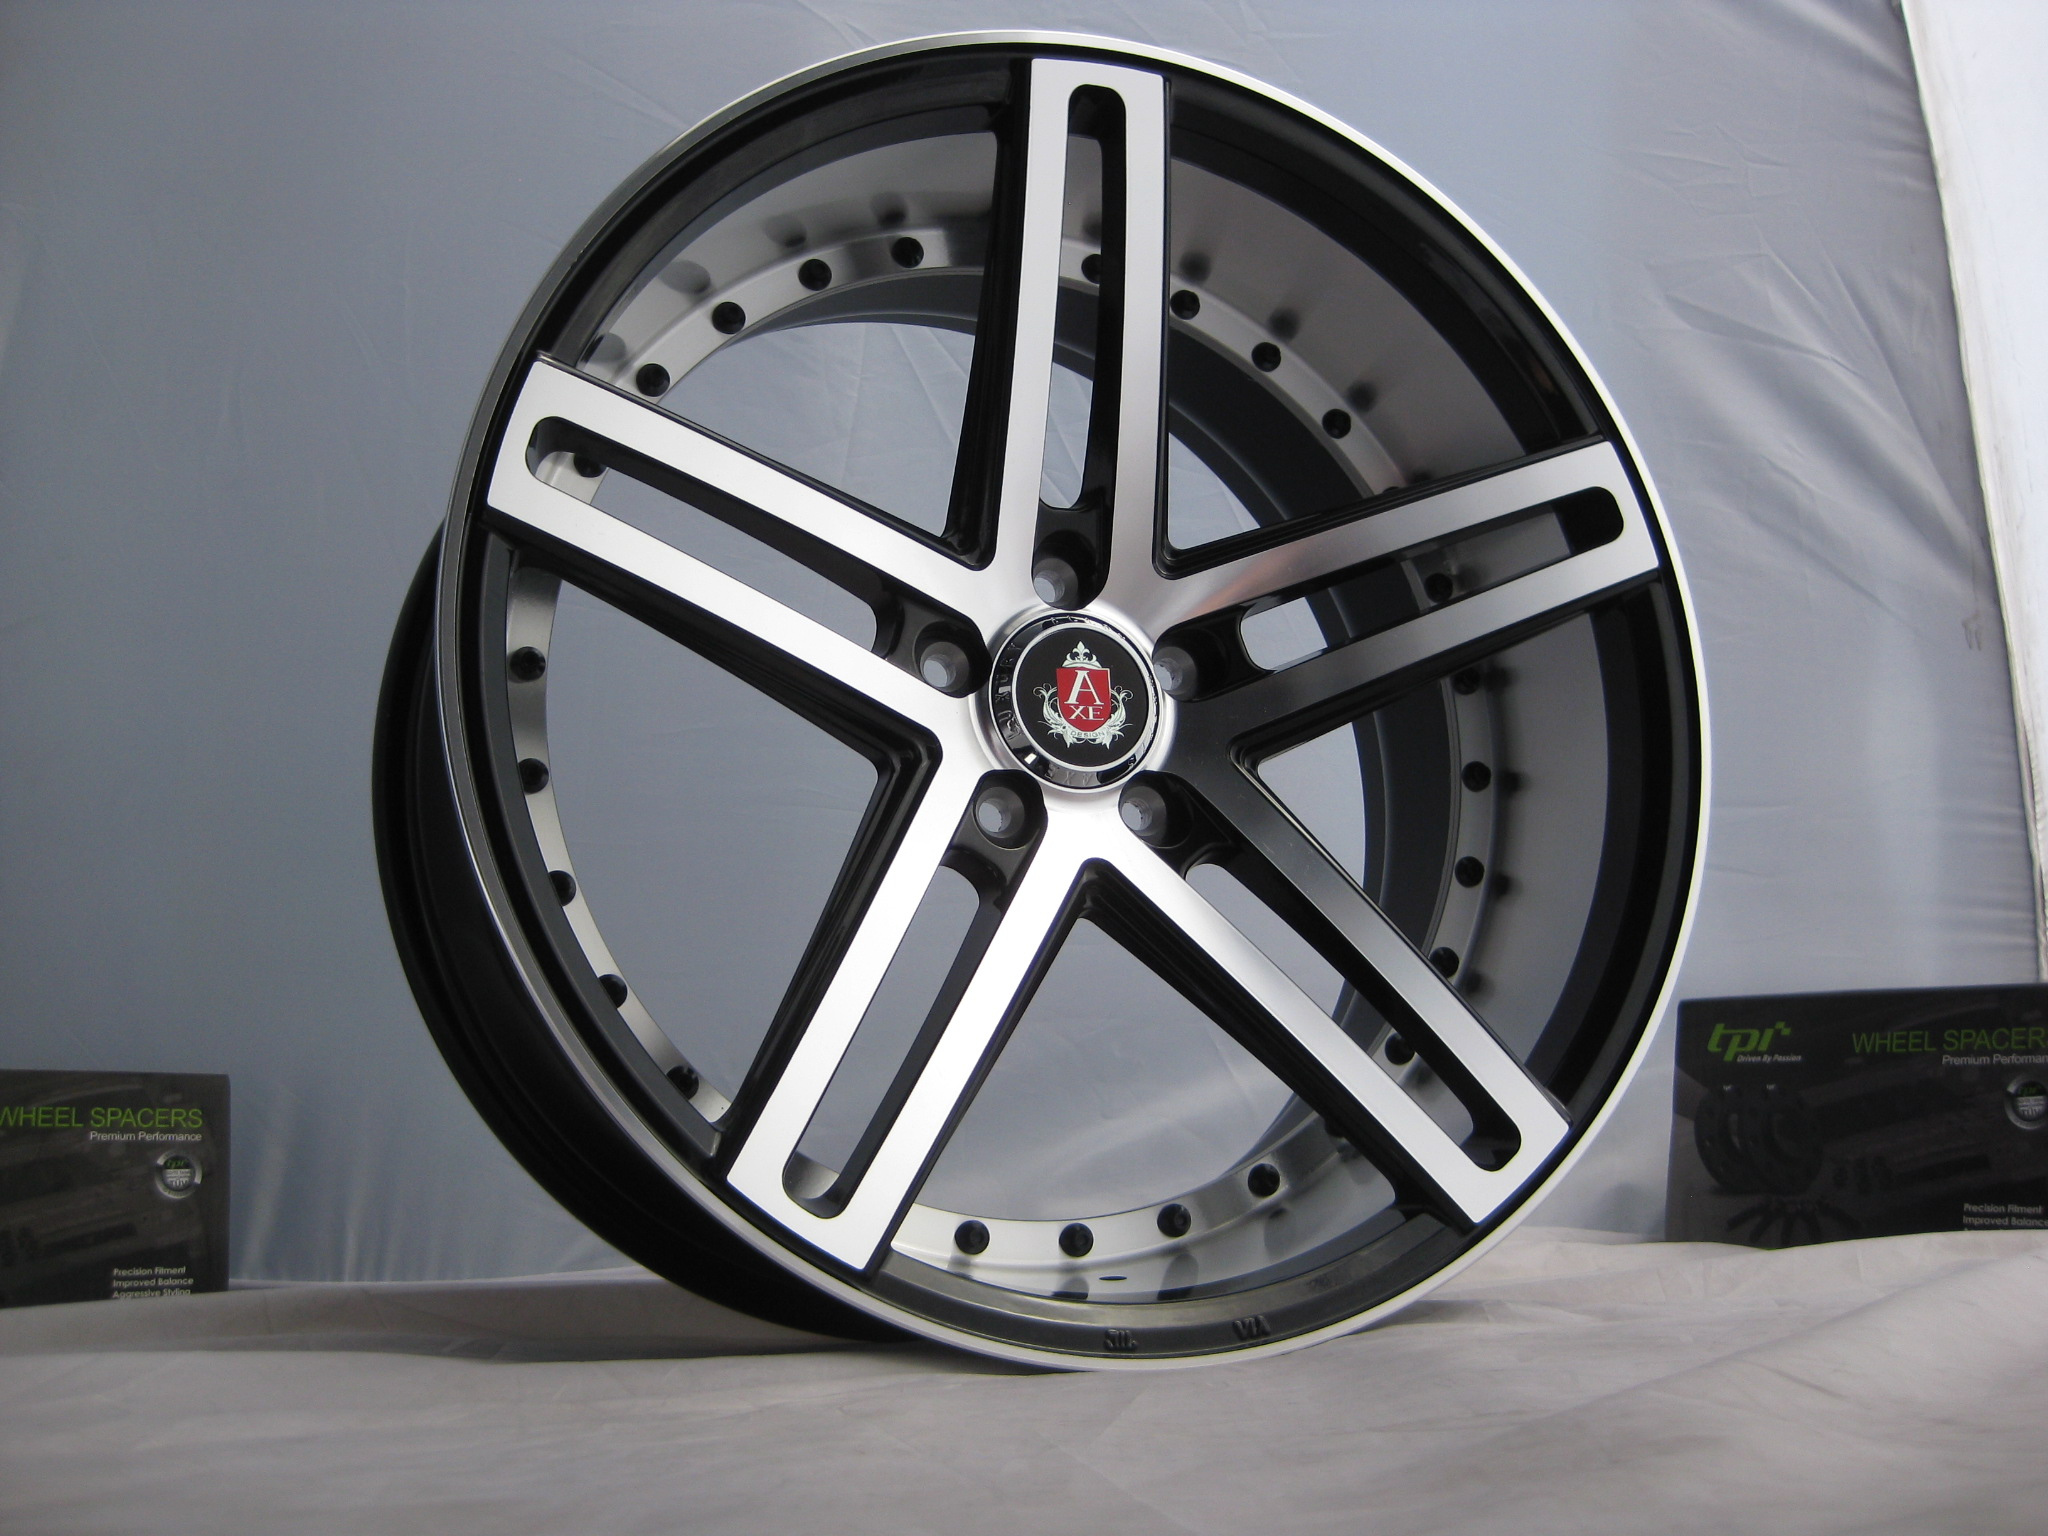 New 20 Quot Axe Ex20 Alloys In Black With Polished Face And